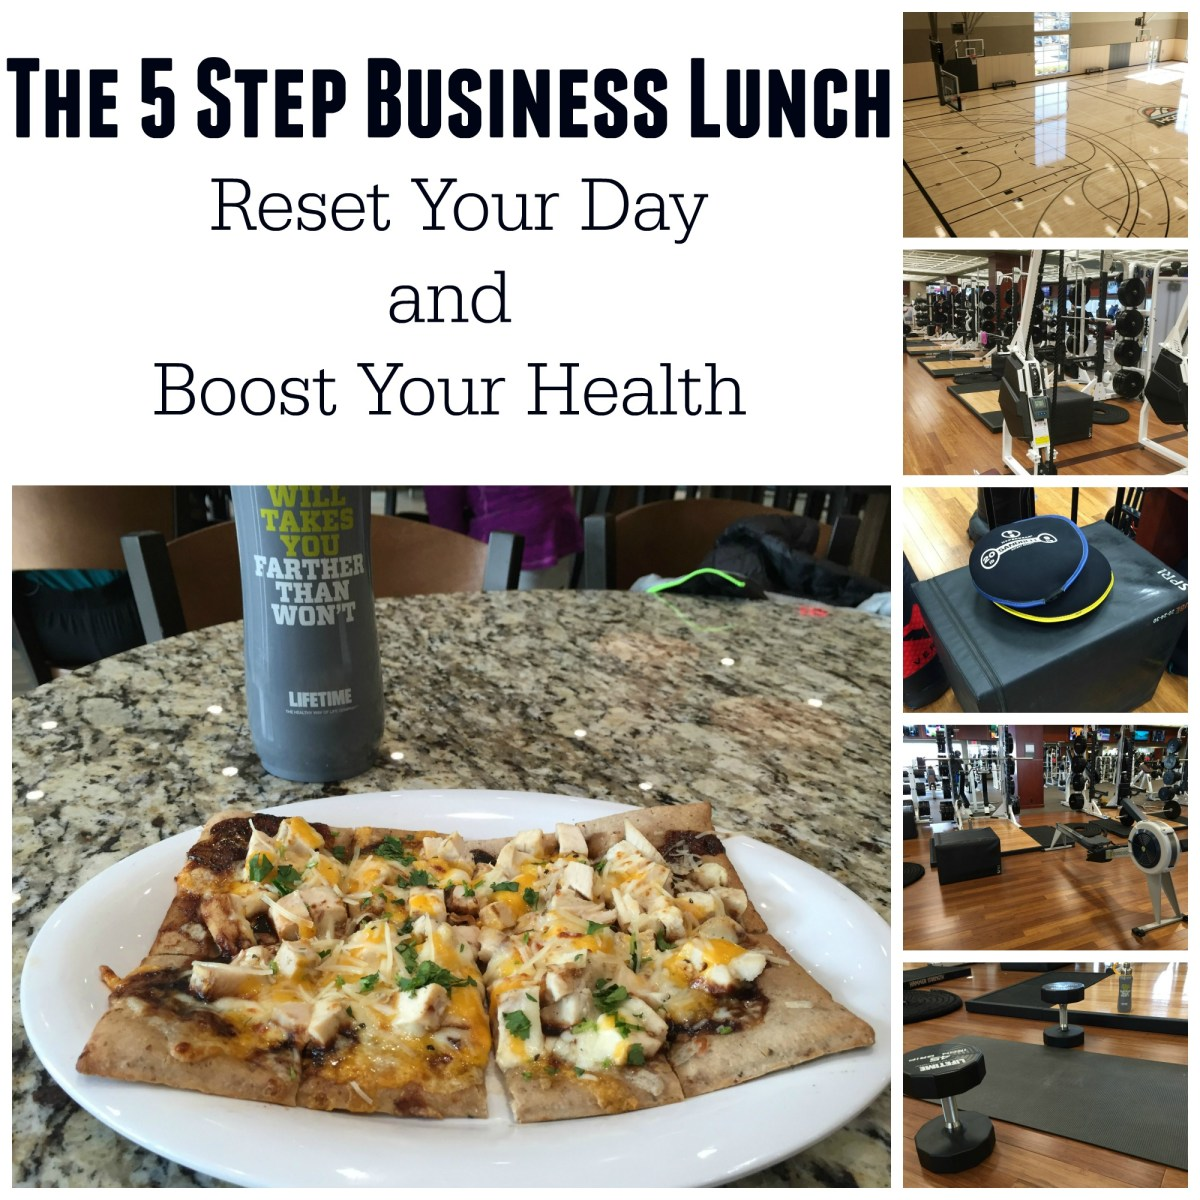 The 5 Step Business Lunch: Reset Your Day and Boost Your Health